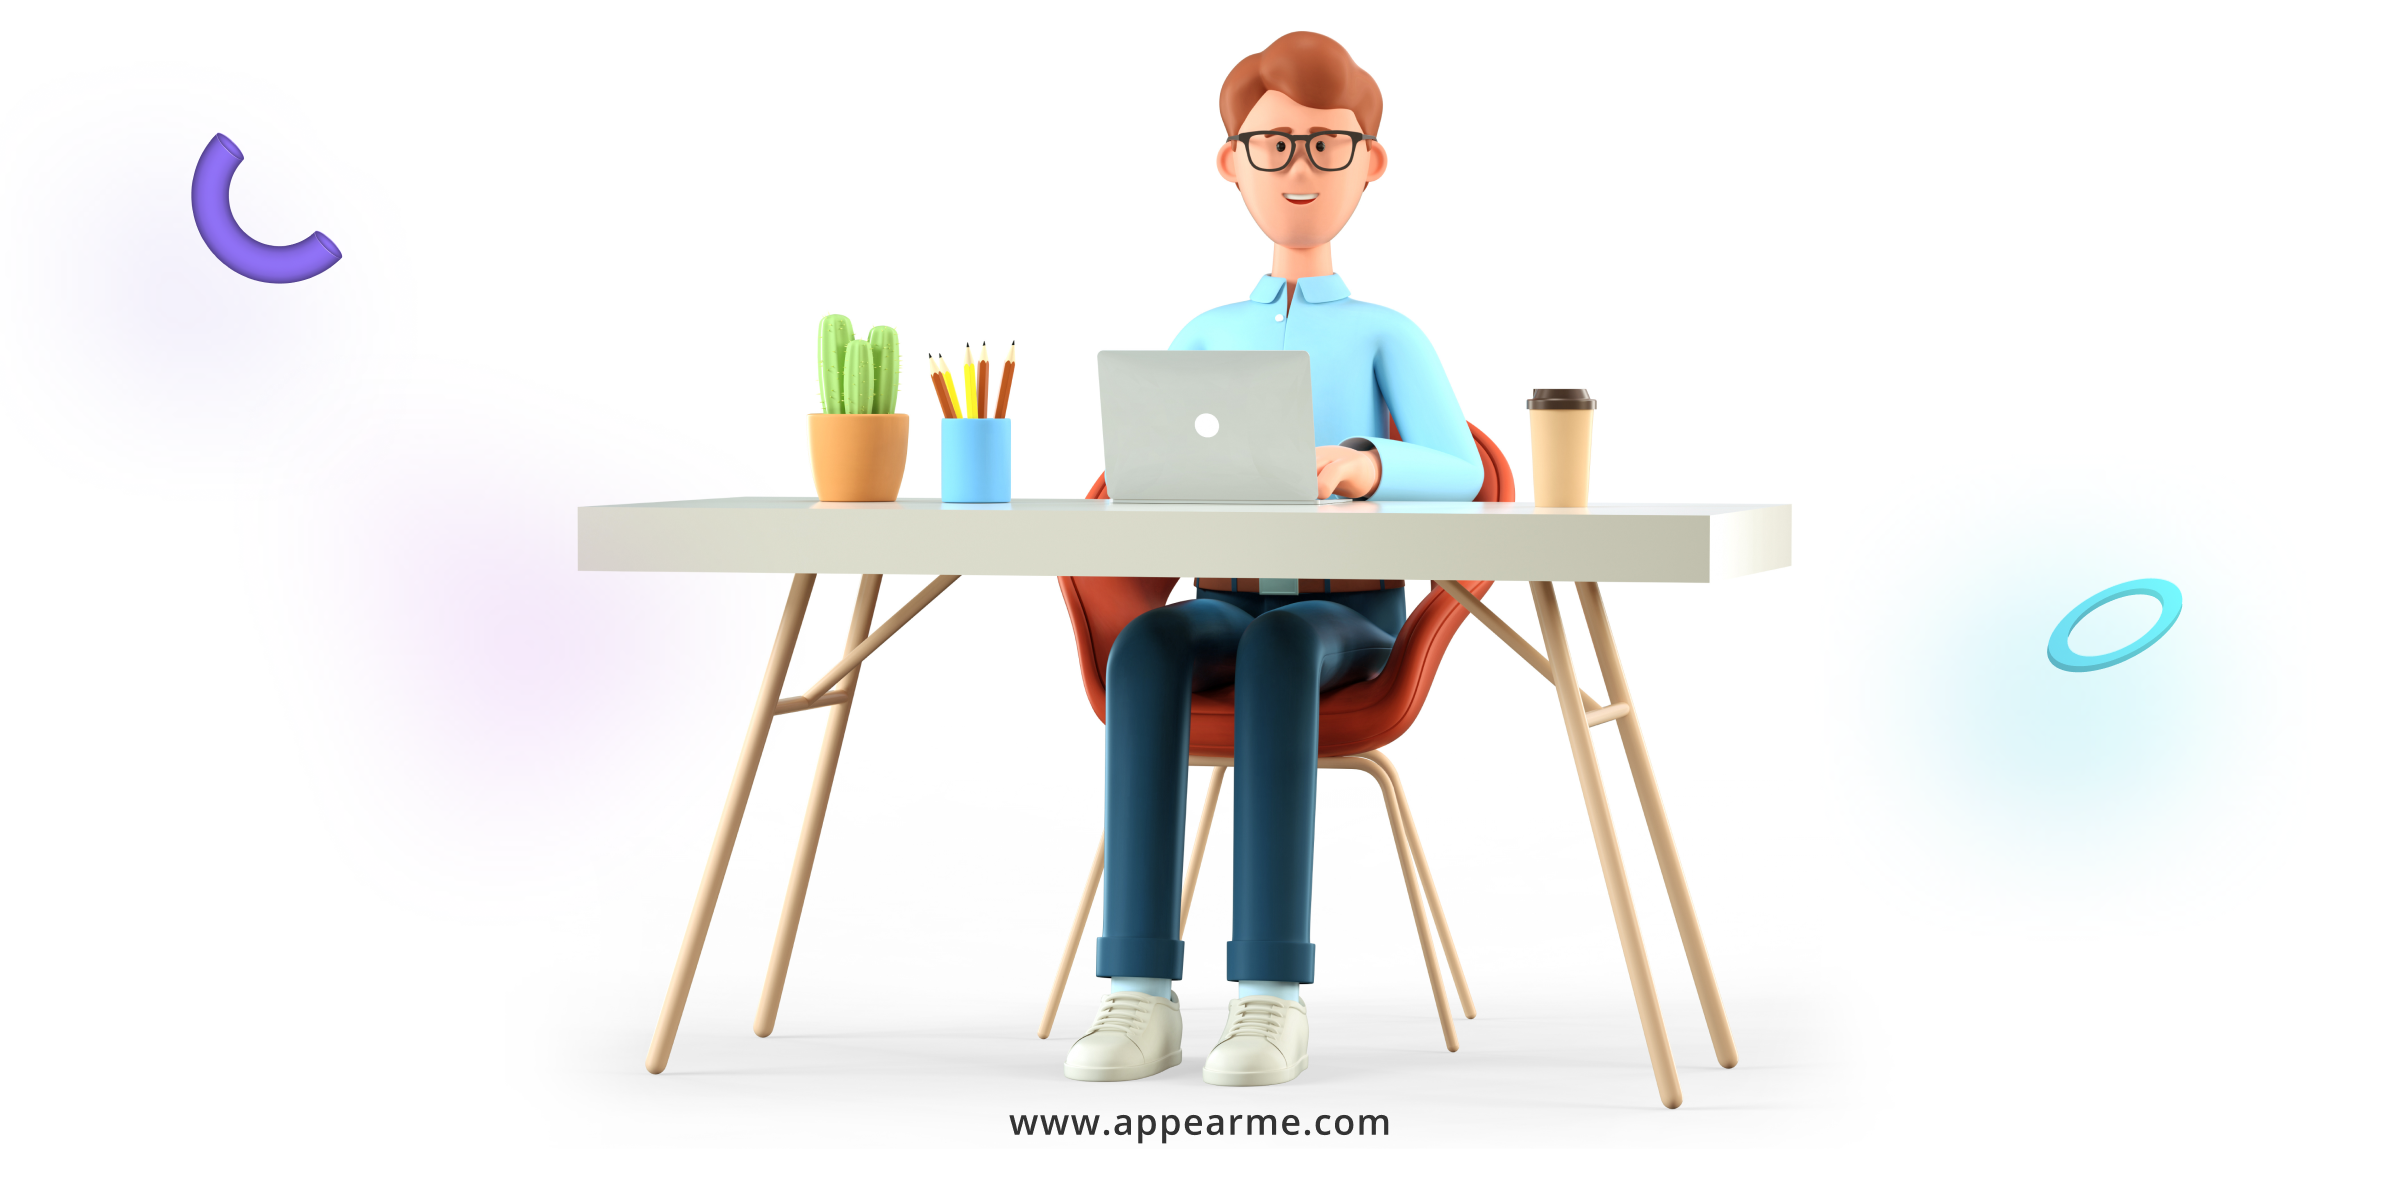 Freelance Attorneys: A More Flexible Legal Career with AppearMe